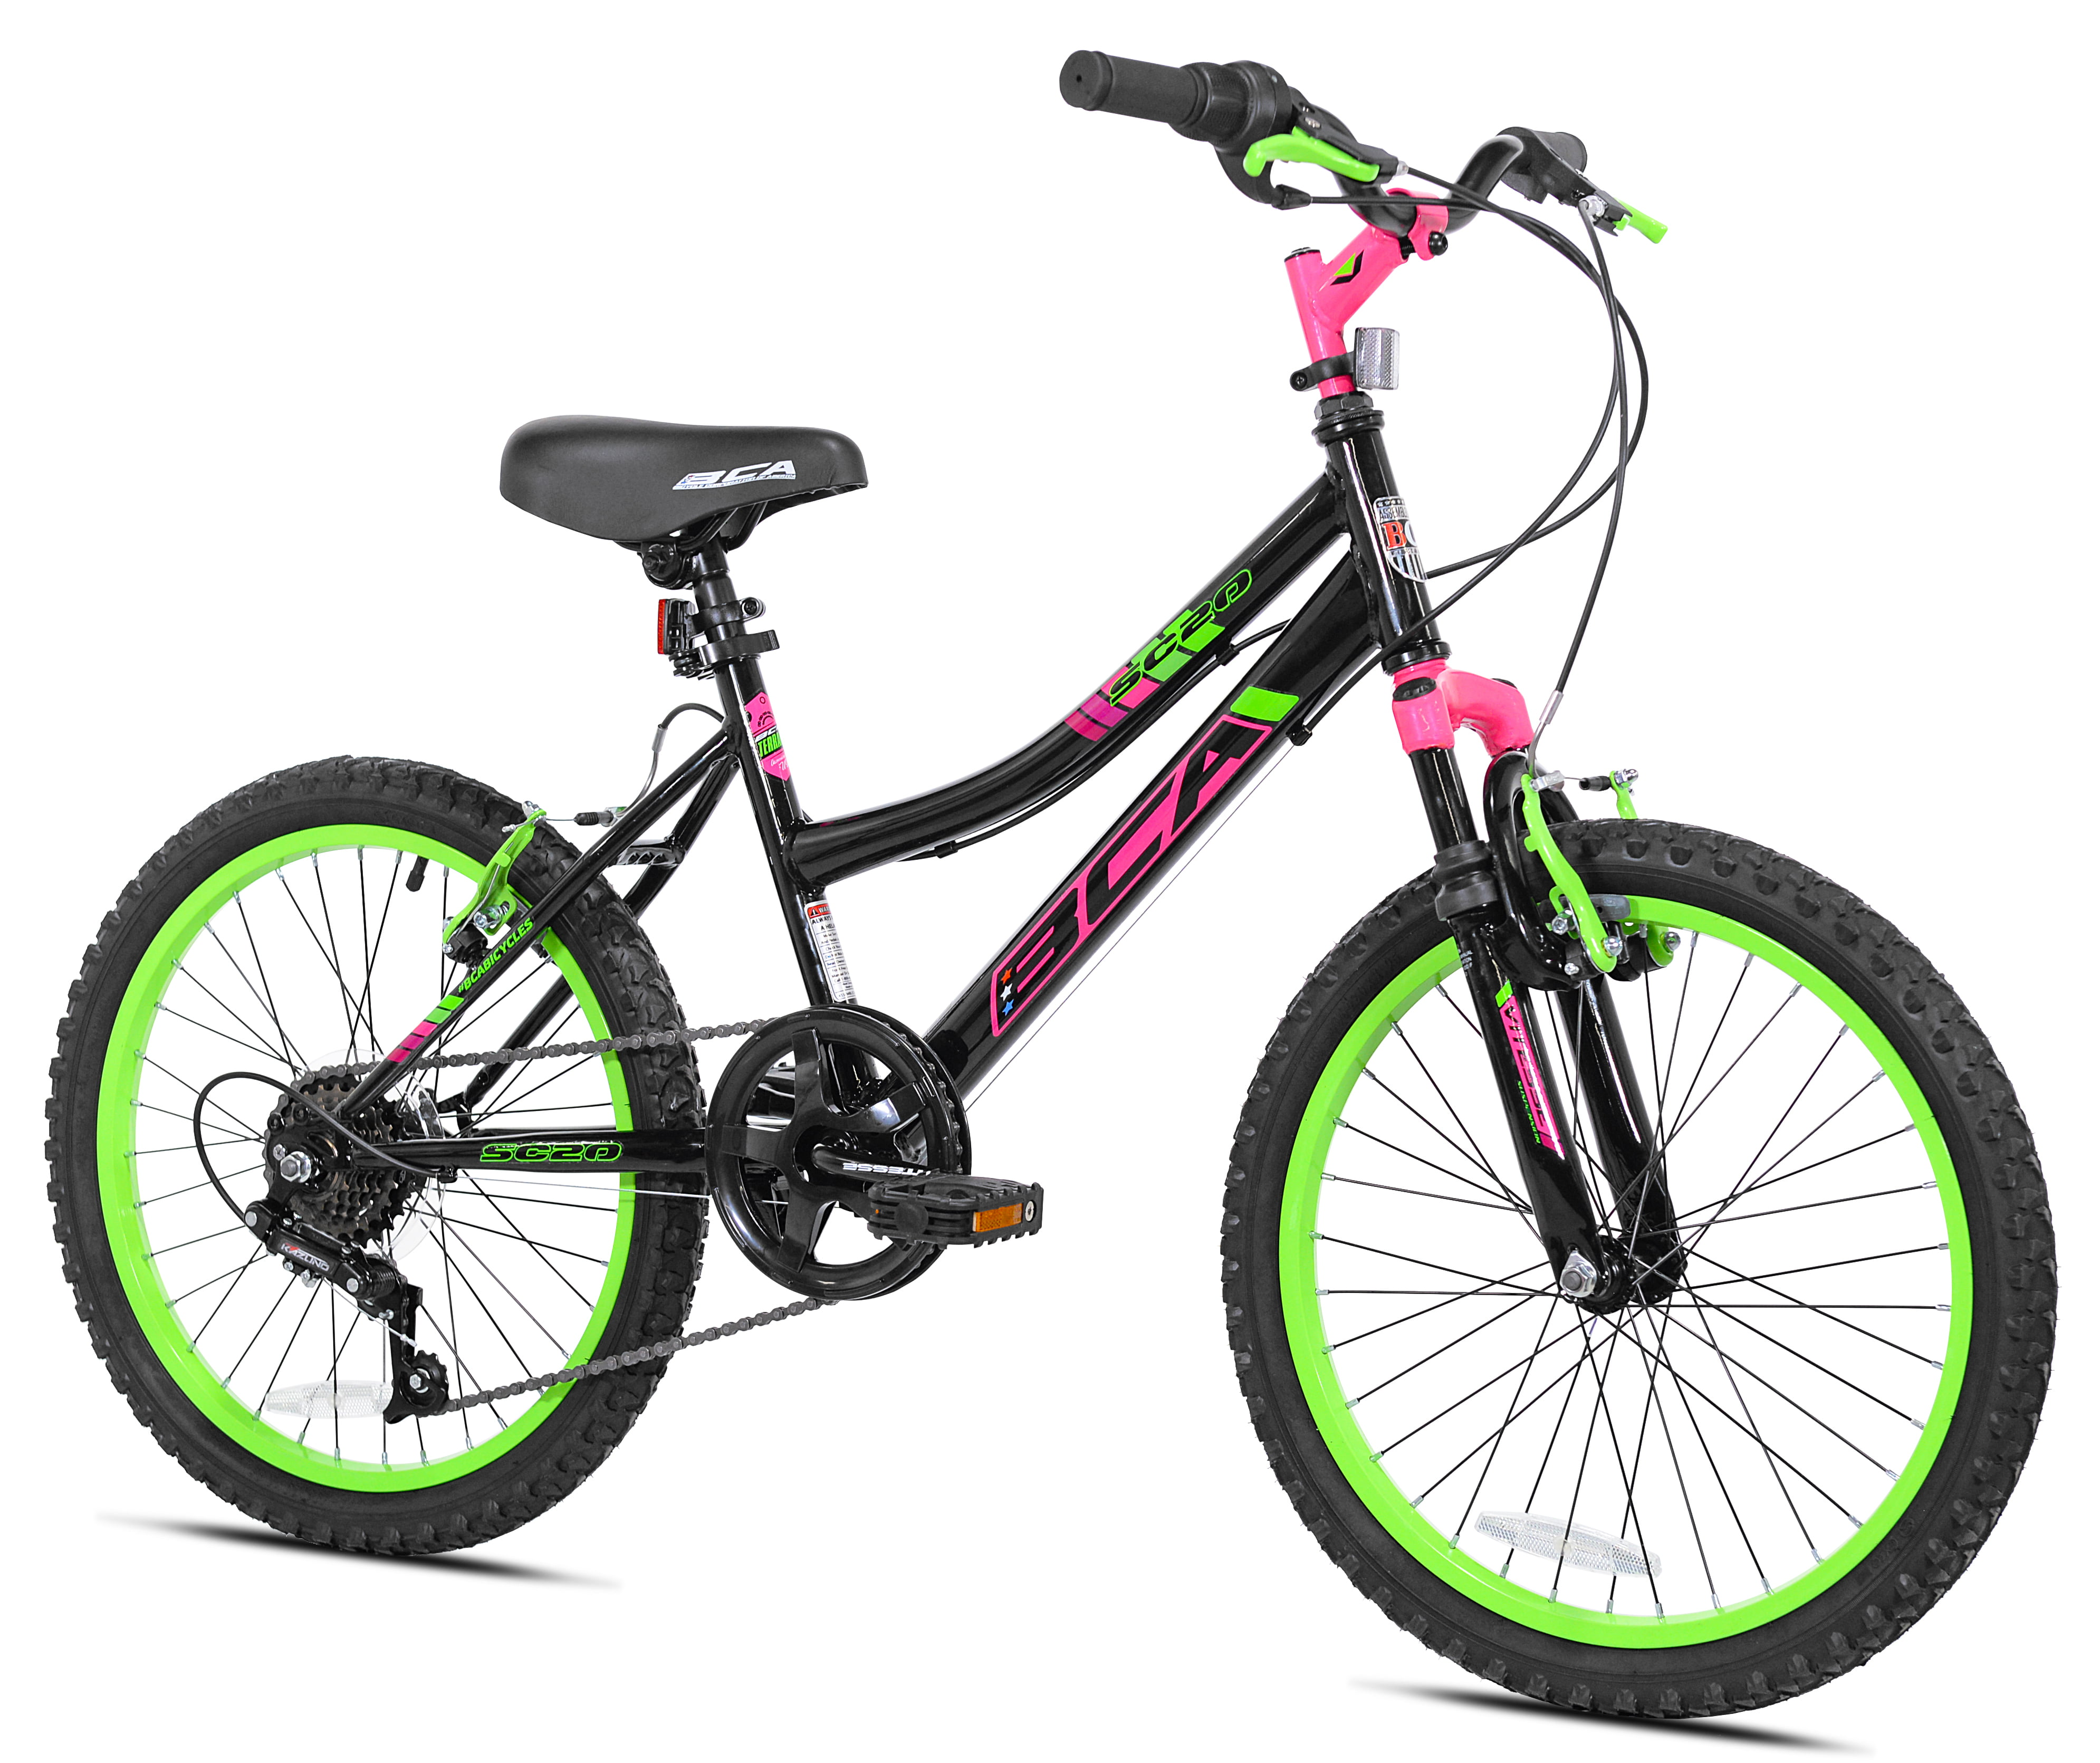 "BCA 20"" SC20 Girl's Bike, Black/Green, For Height Sizes 4'2"" and Up"